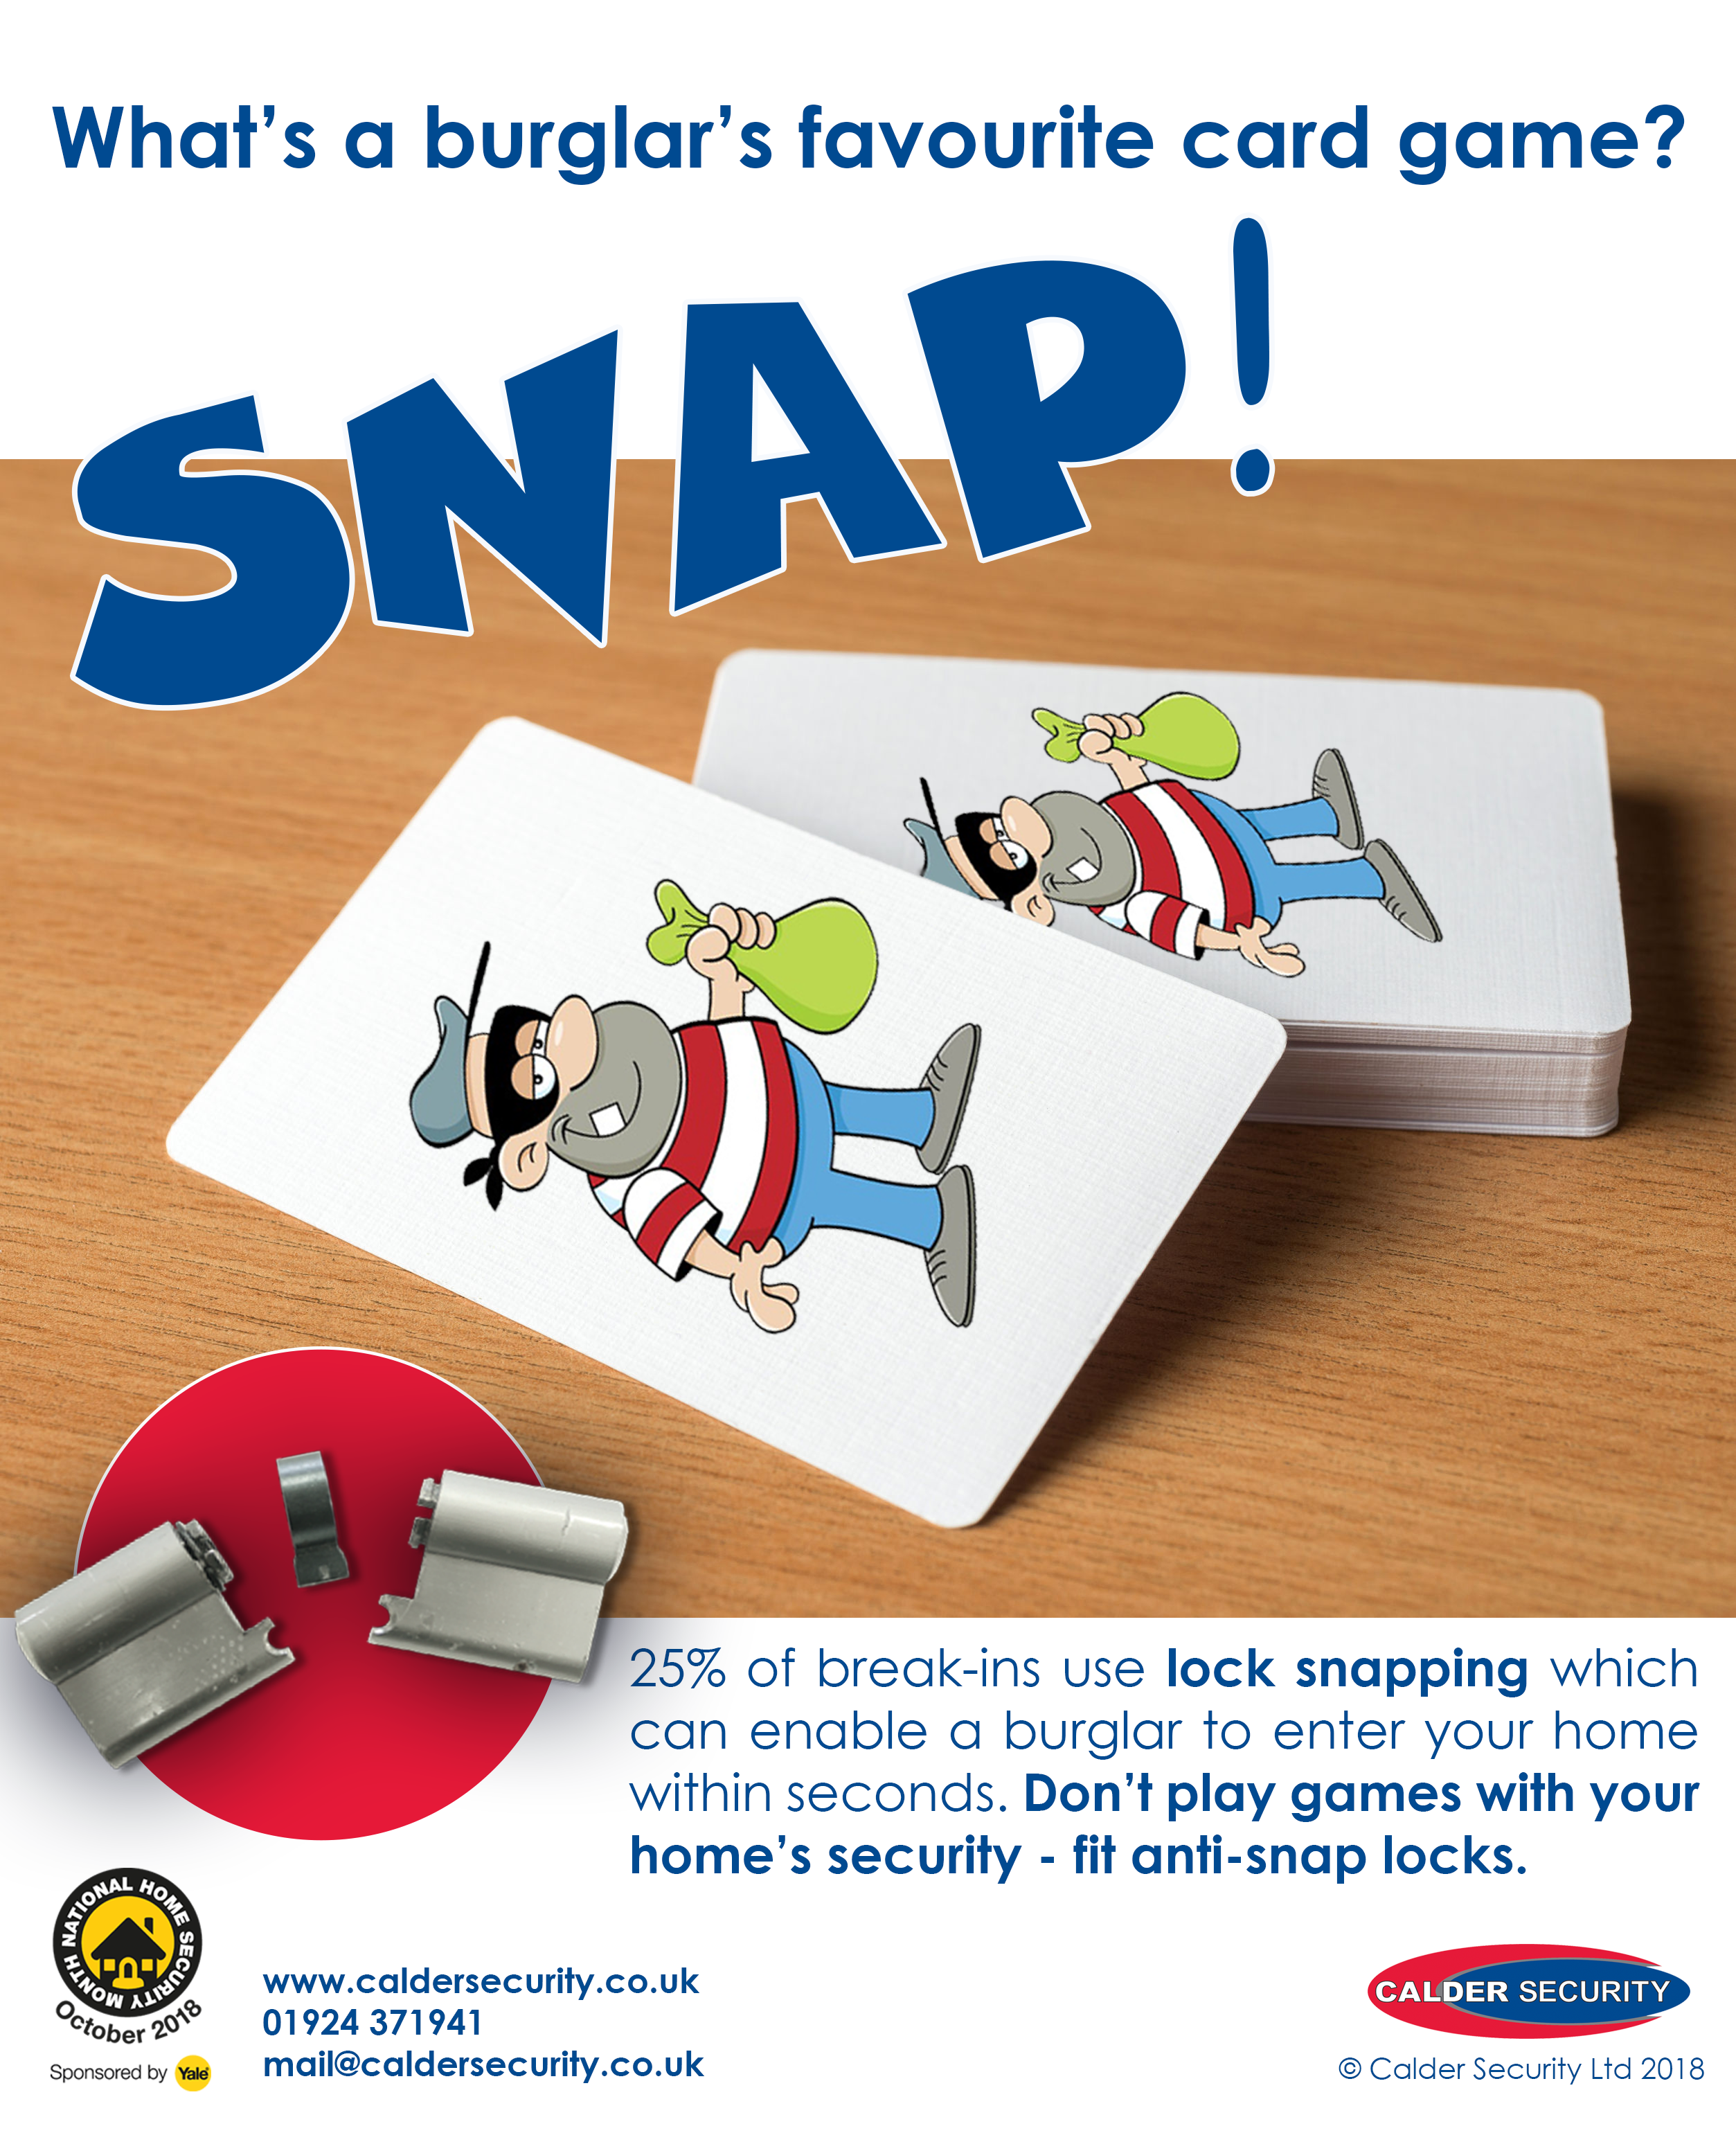 Burglars favourite card game